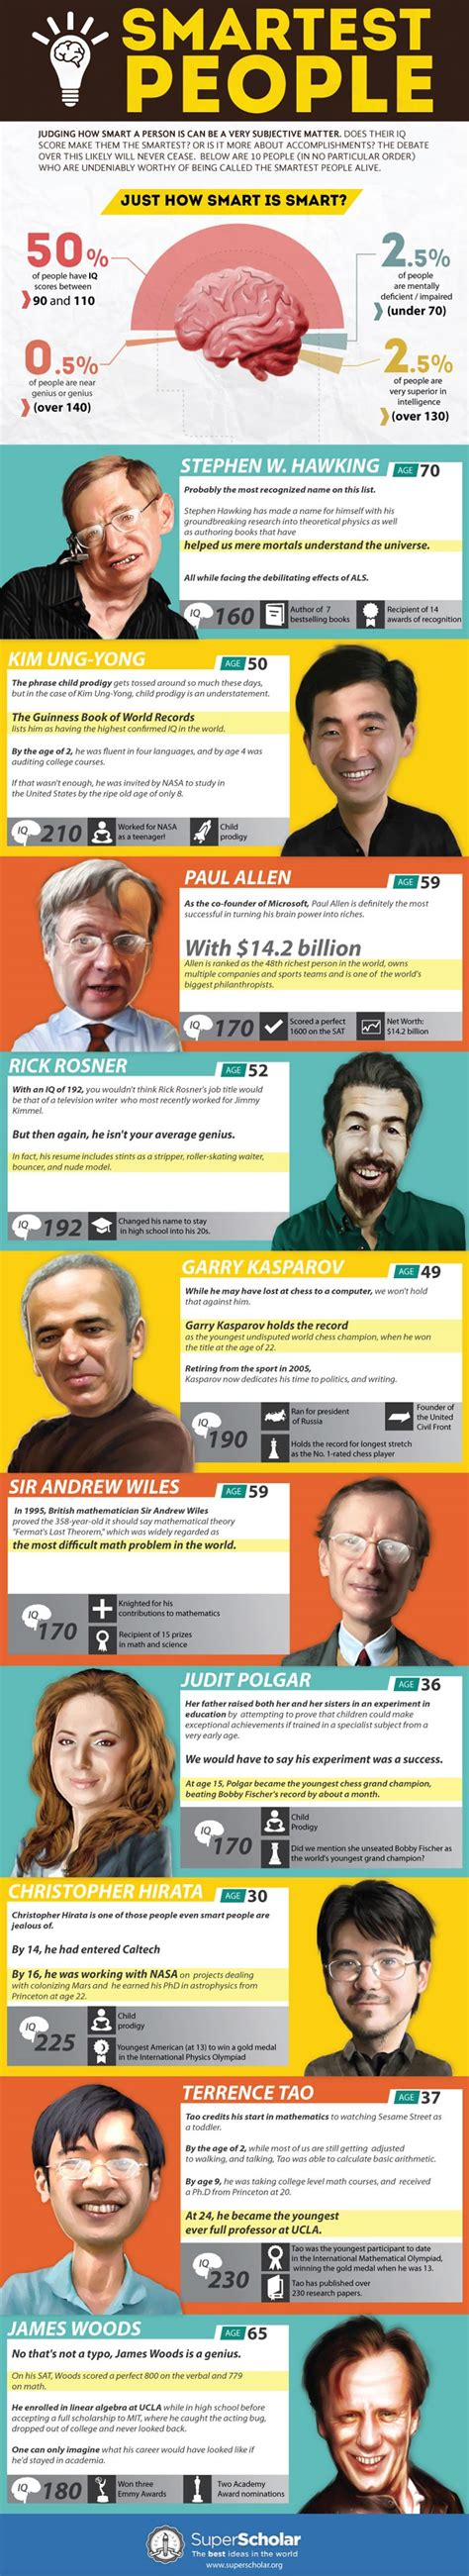 smartest in the world infographic the top 10 smartest alive right now